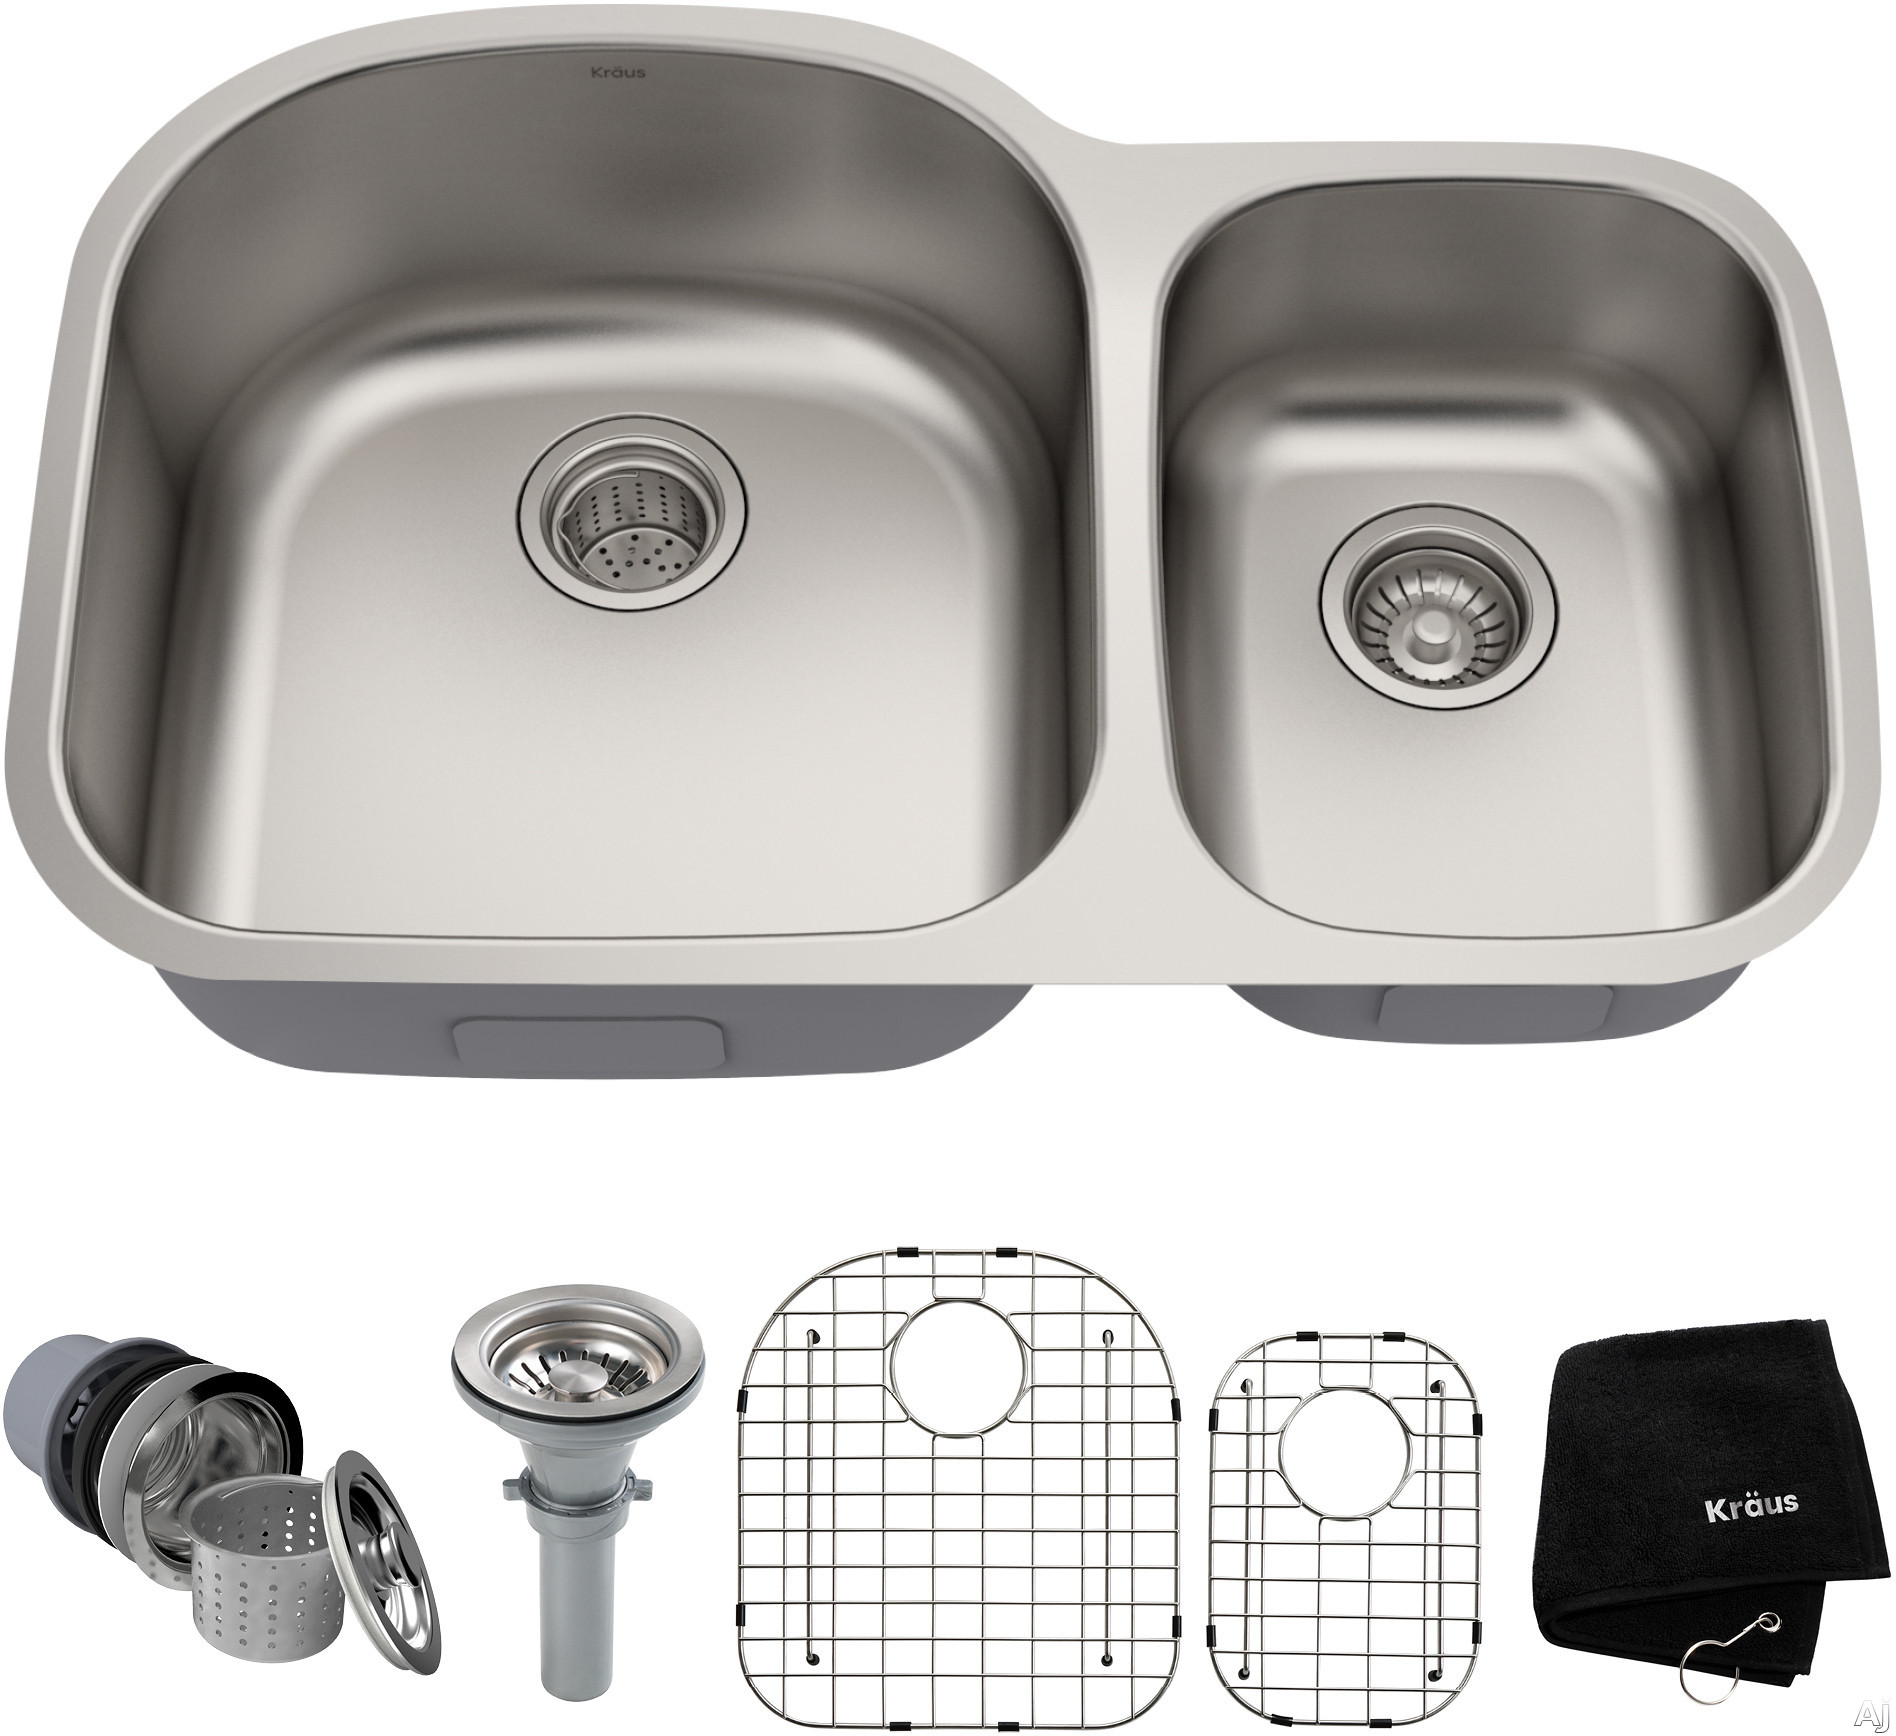 Kraus KBU23 32 Inch Undermount 60/40 Double Bowl Stainless Steel Kitchen Sink with 18-Gauge, Rear-Set Drain Opening and Stone Guard Undercoating